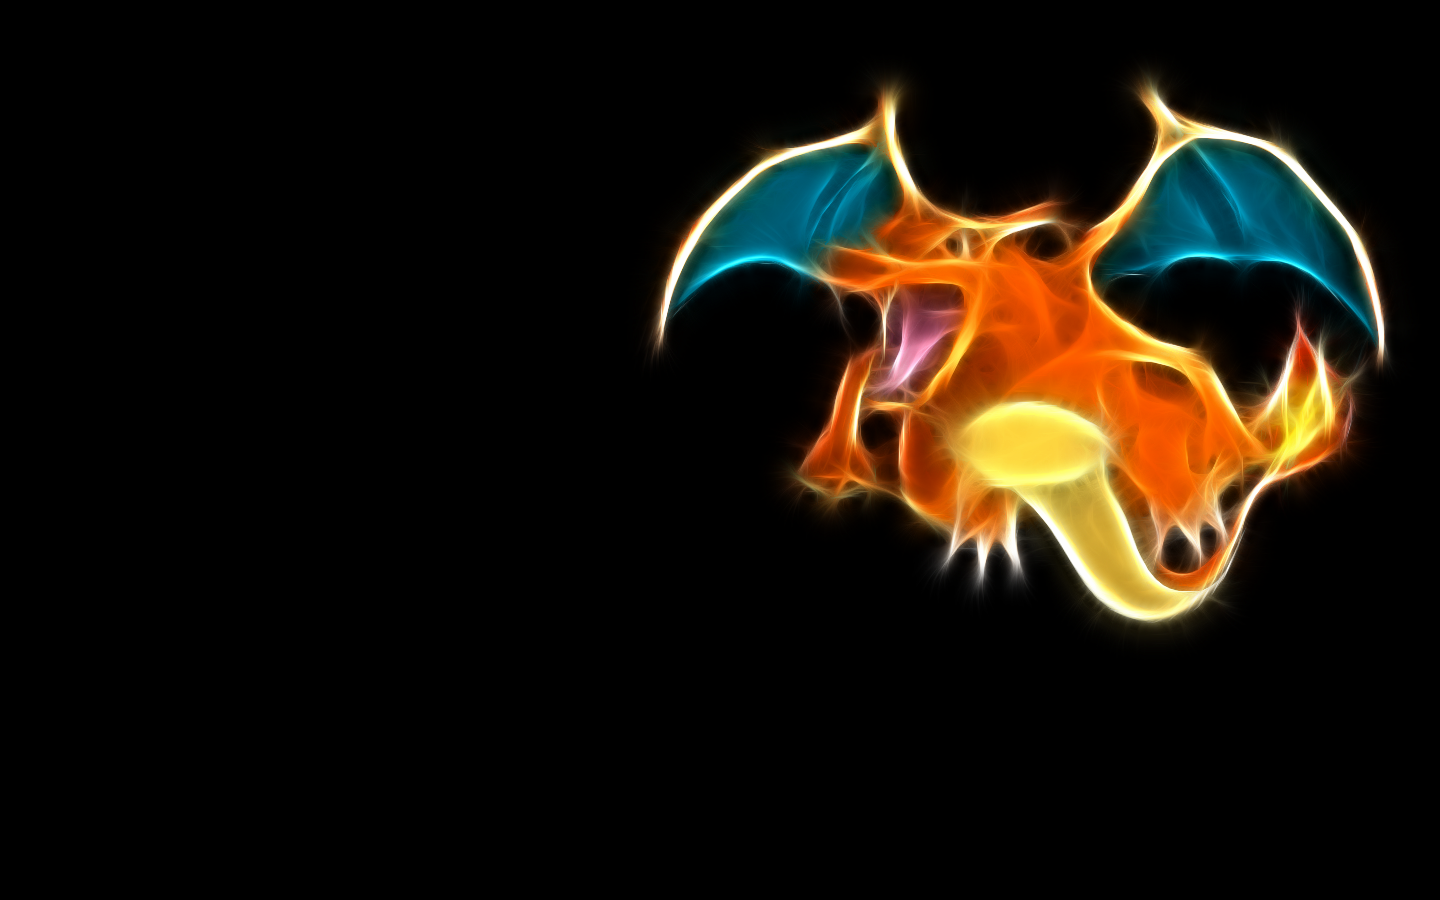 Download Pokemon Charizard Wallpaper 1440x900 Full HD Wallpapers 1440x900